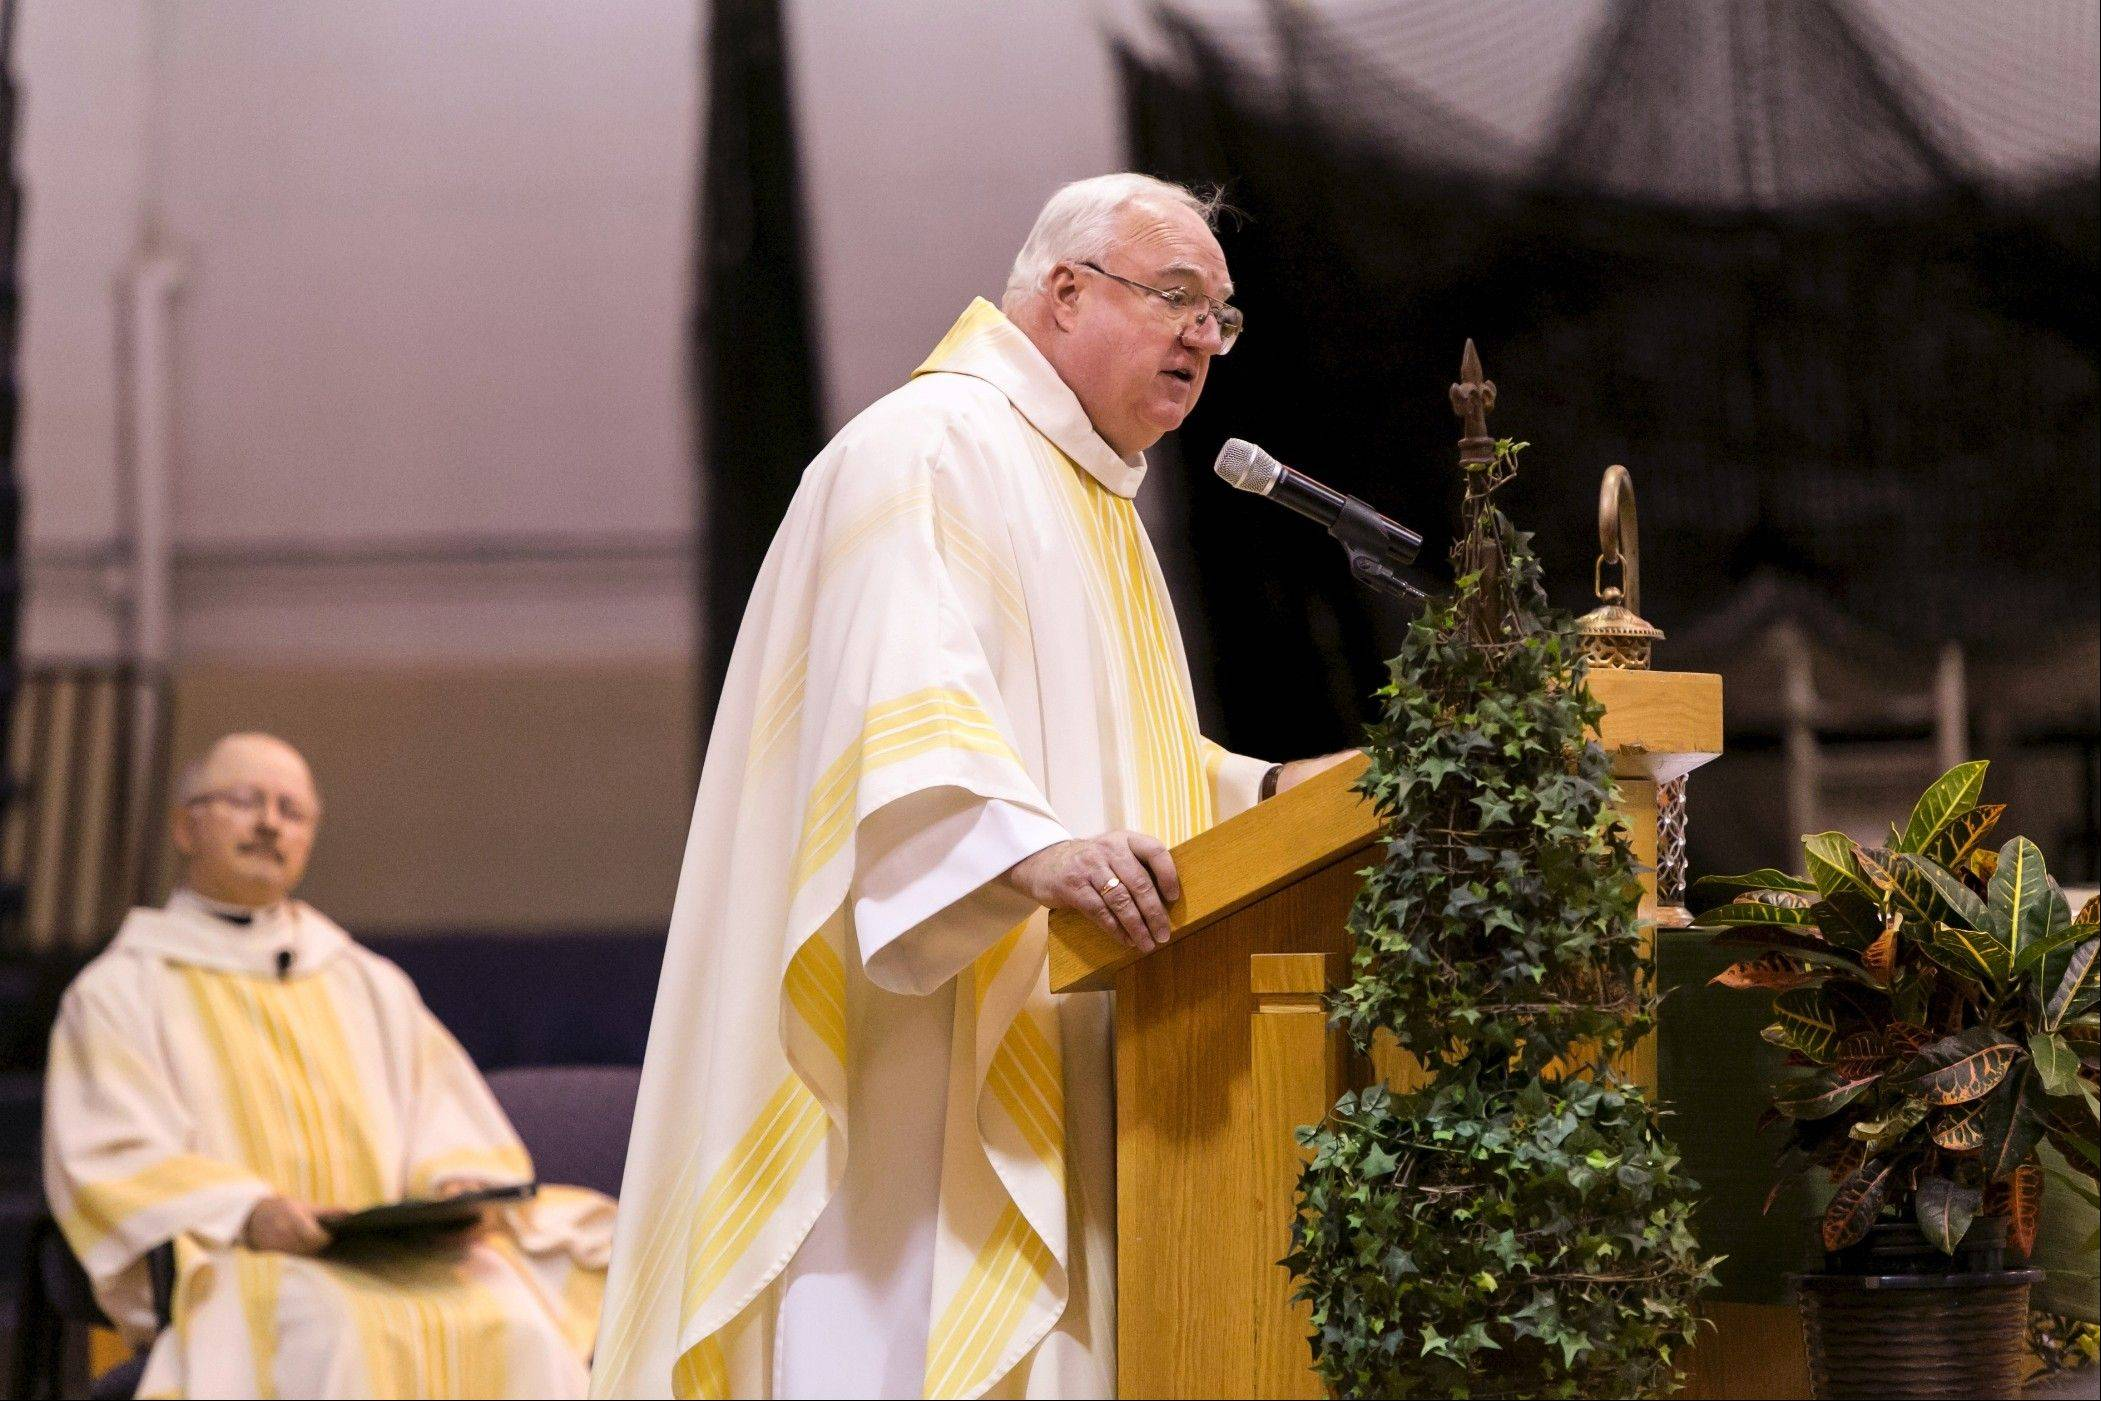 Father Robert Egan, outgoing president of St. Viator High School, saying Mass.